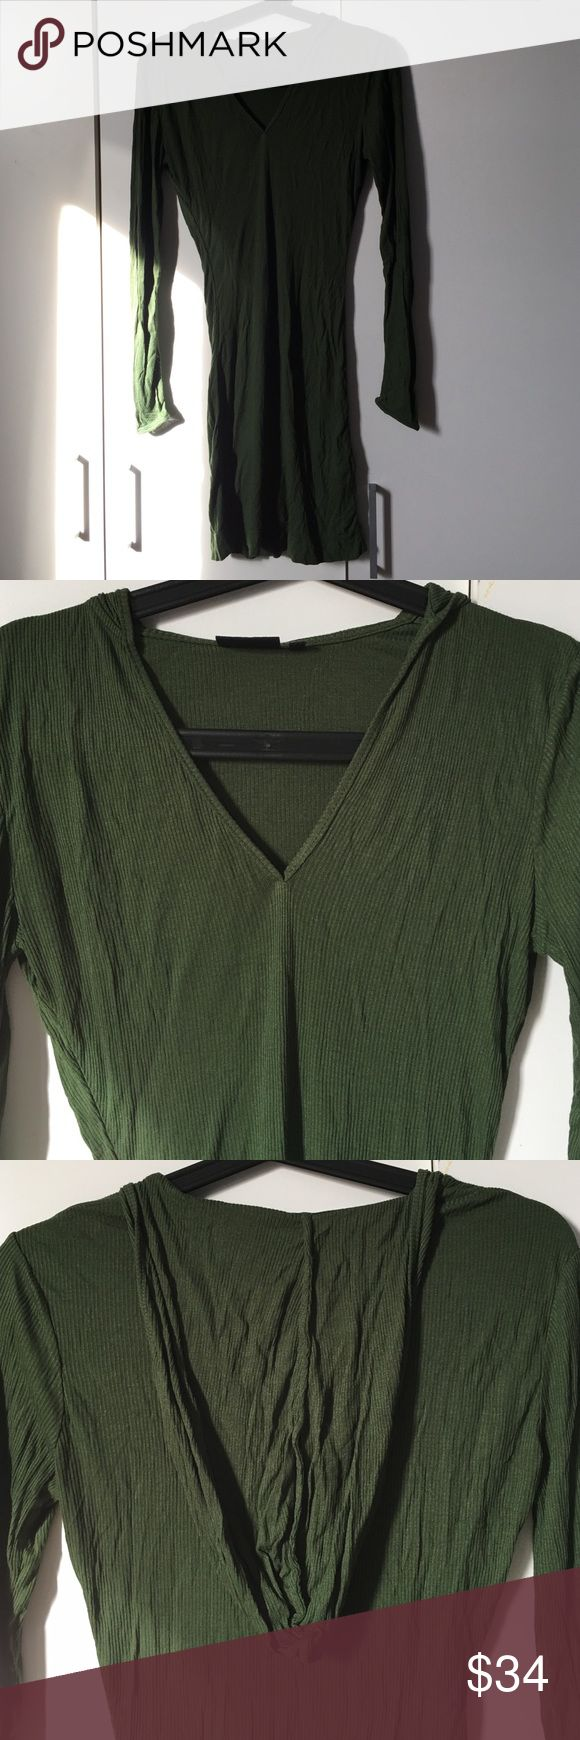 Kate Spate Saturday Hooded Jersey Dress in Olive Kate Spate Saturday Hooded Jersey Dress in Olive. Like new! kate spade Tops Tunics